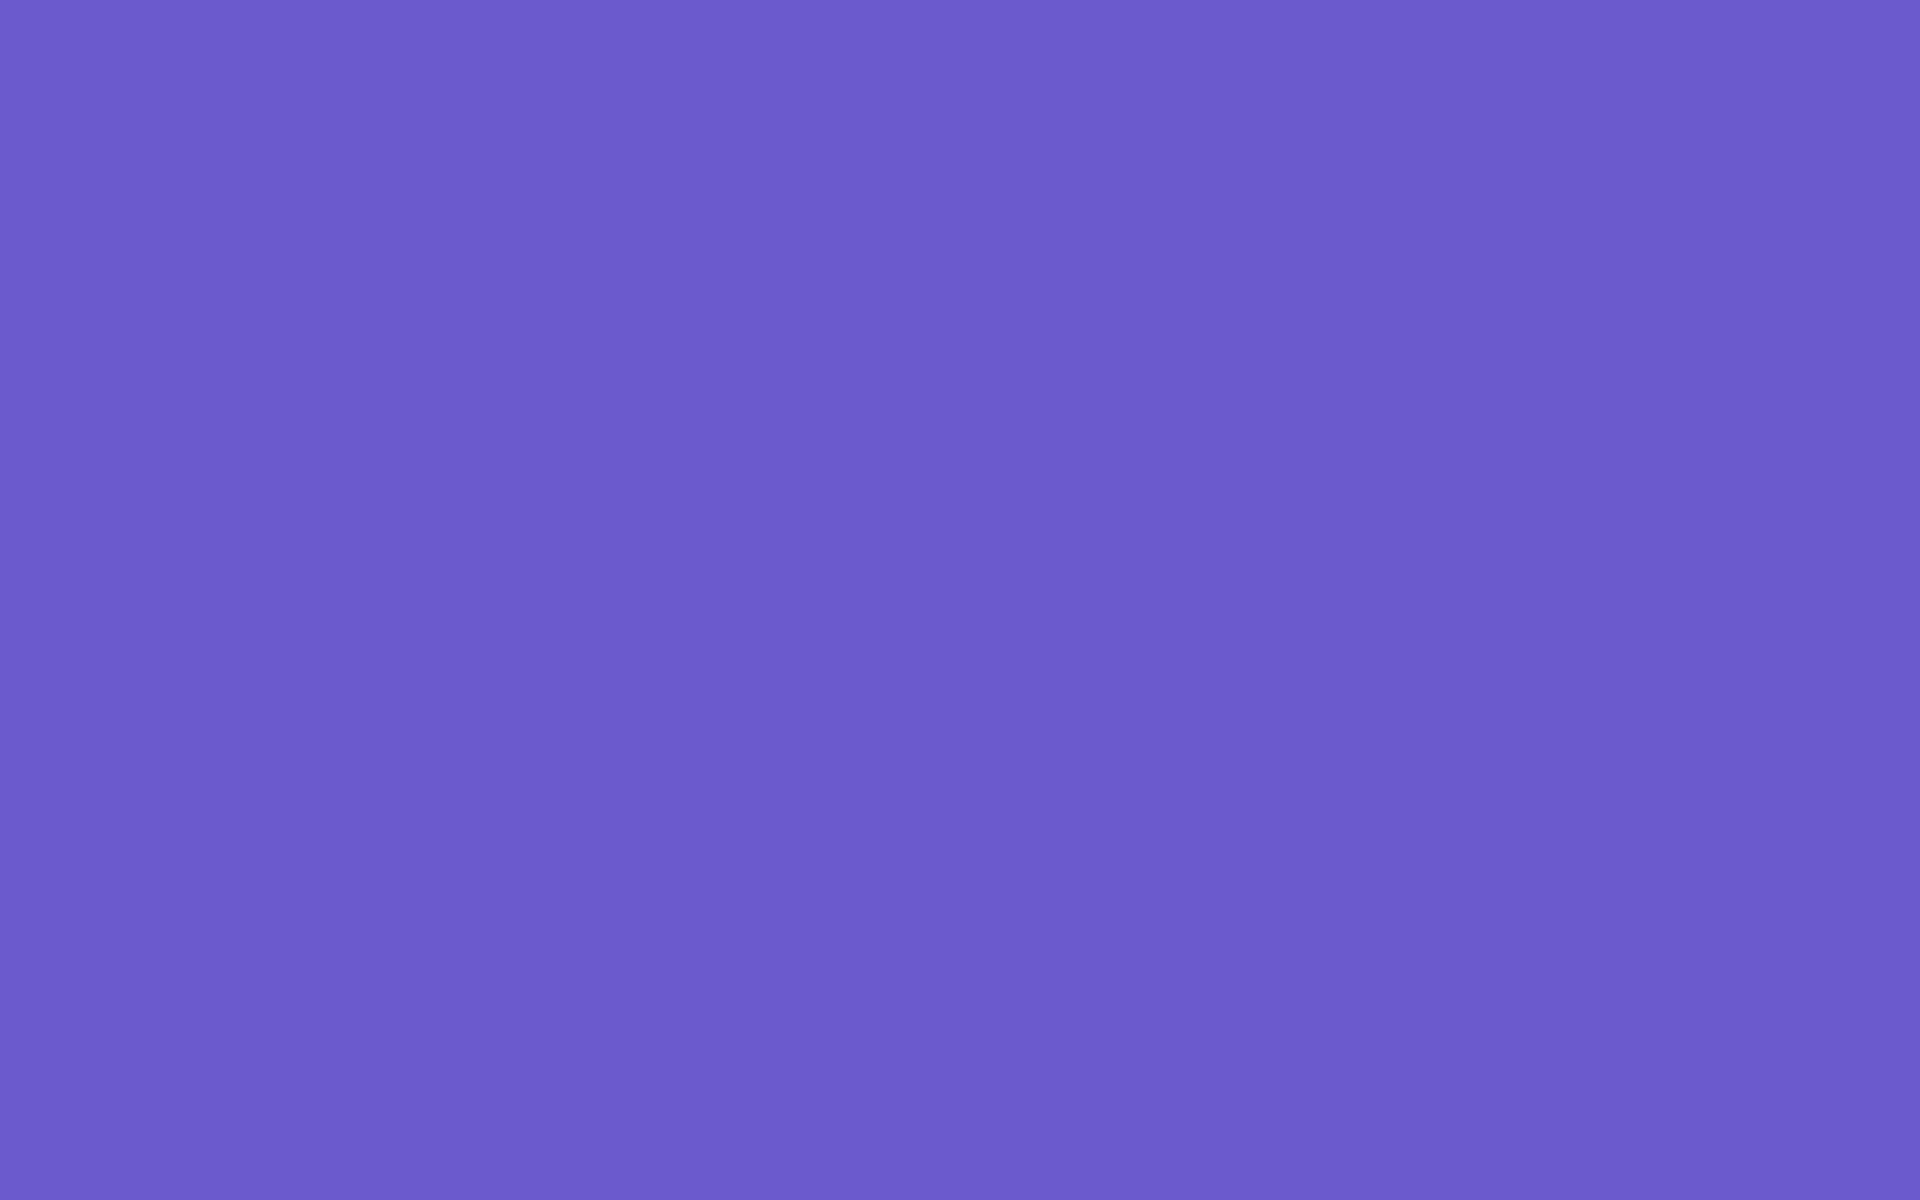 1920x1200 slate blue solid color background for The color slate blue